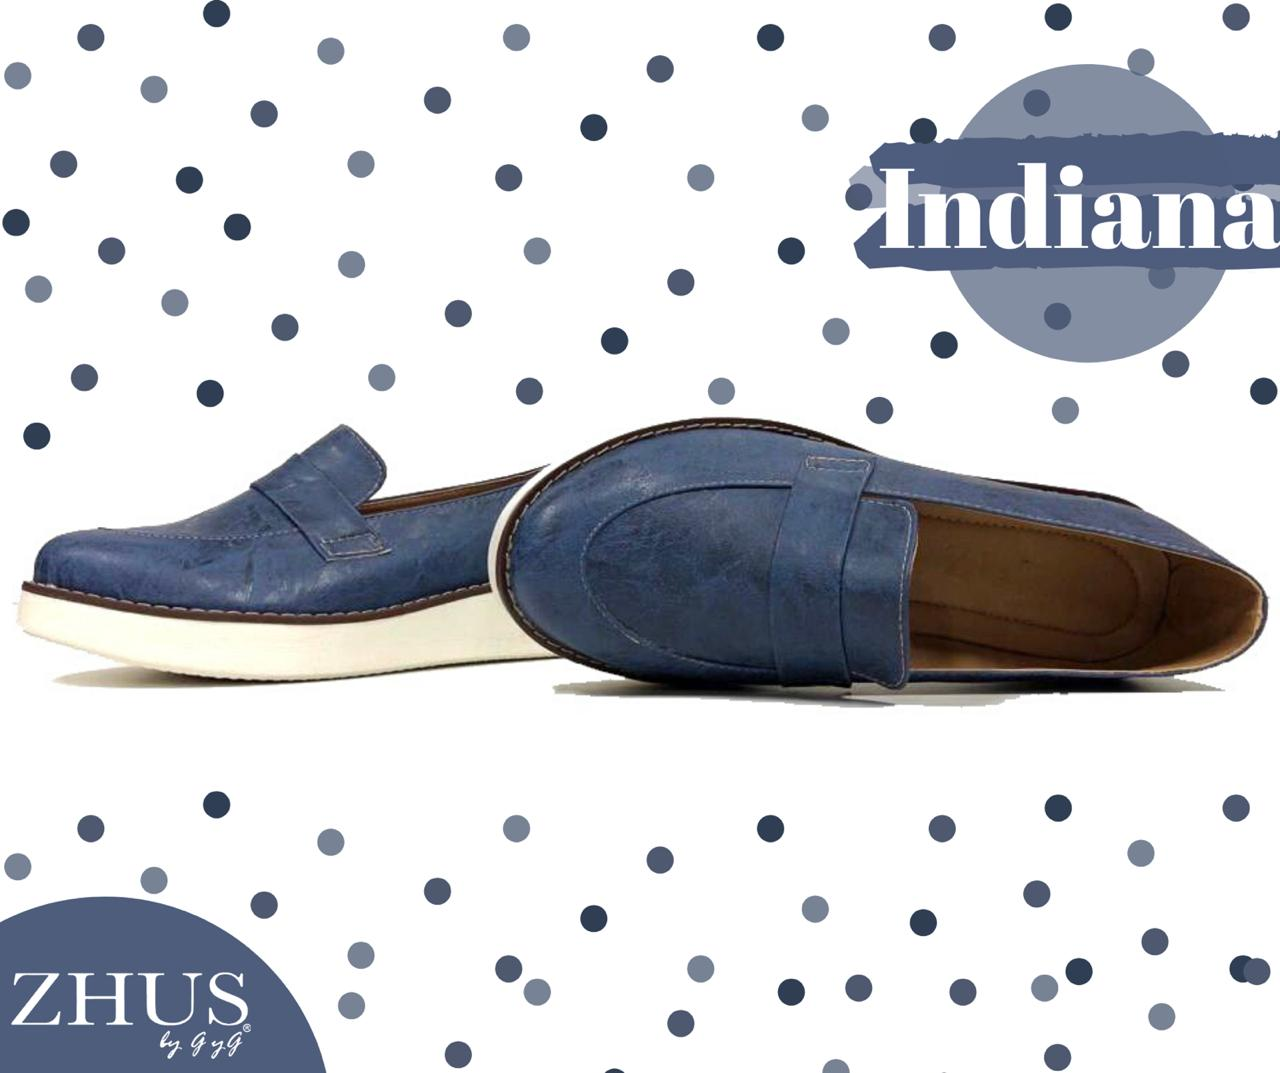 ZHUS SNEAKER AZUL LIKE DENIM